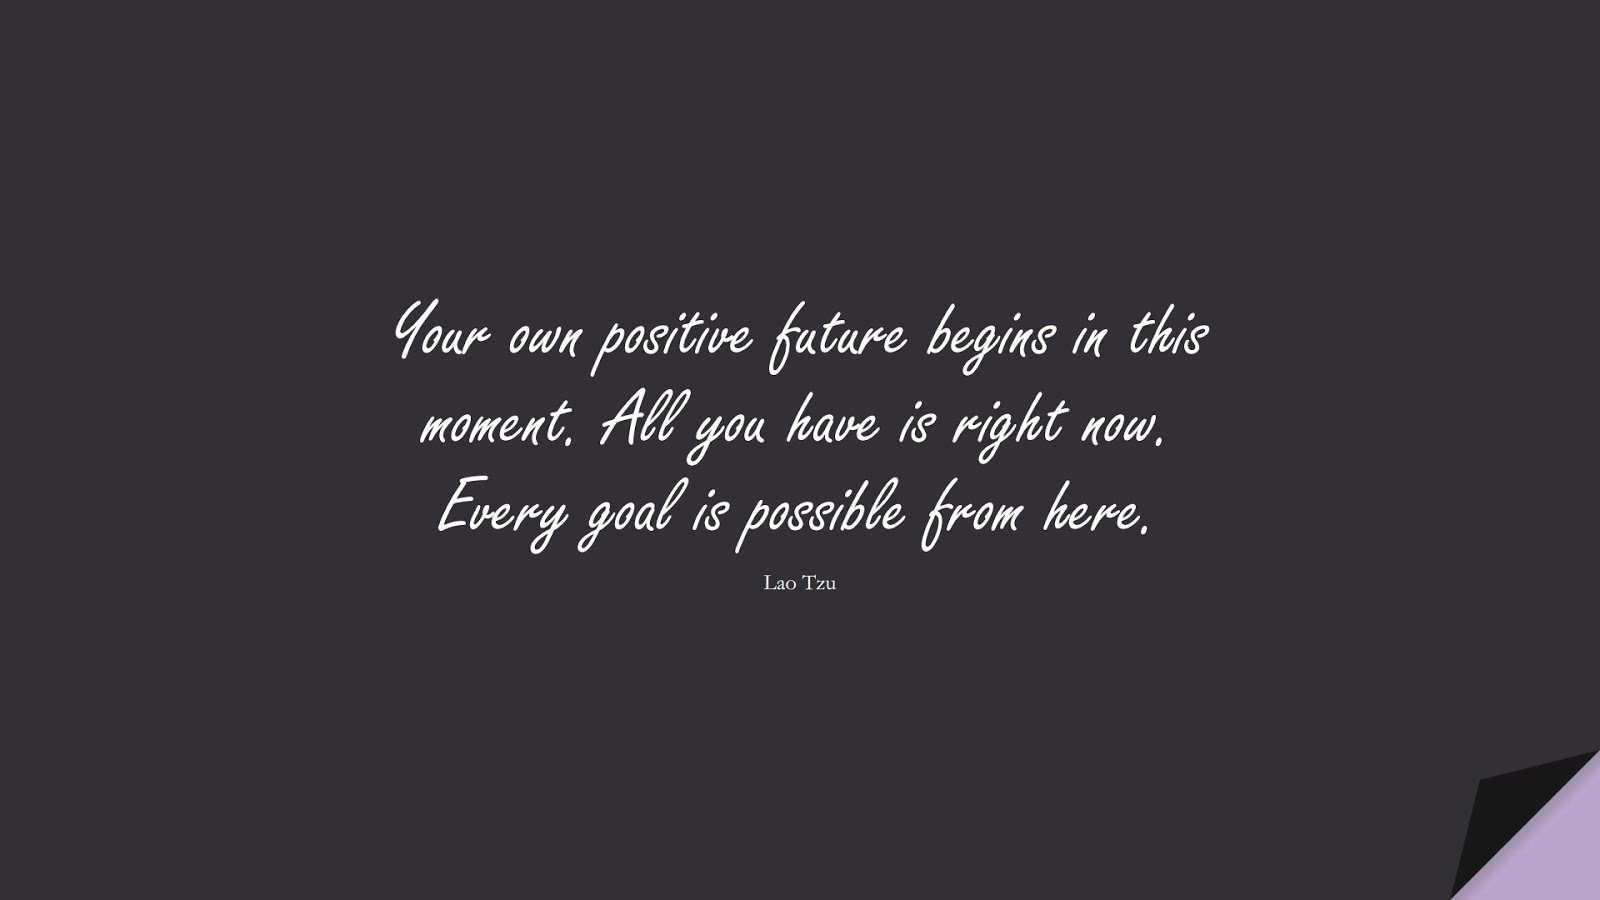 Your own positive future begins in this moment. All you have is right now. Every goal is possible from here. (Lao Tzu);  #EncouragingQuotes